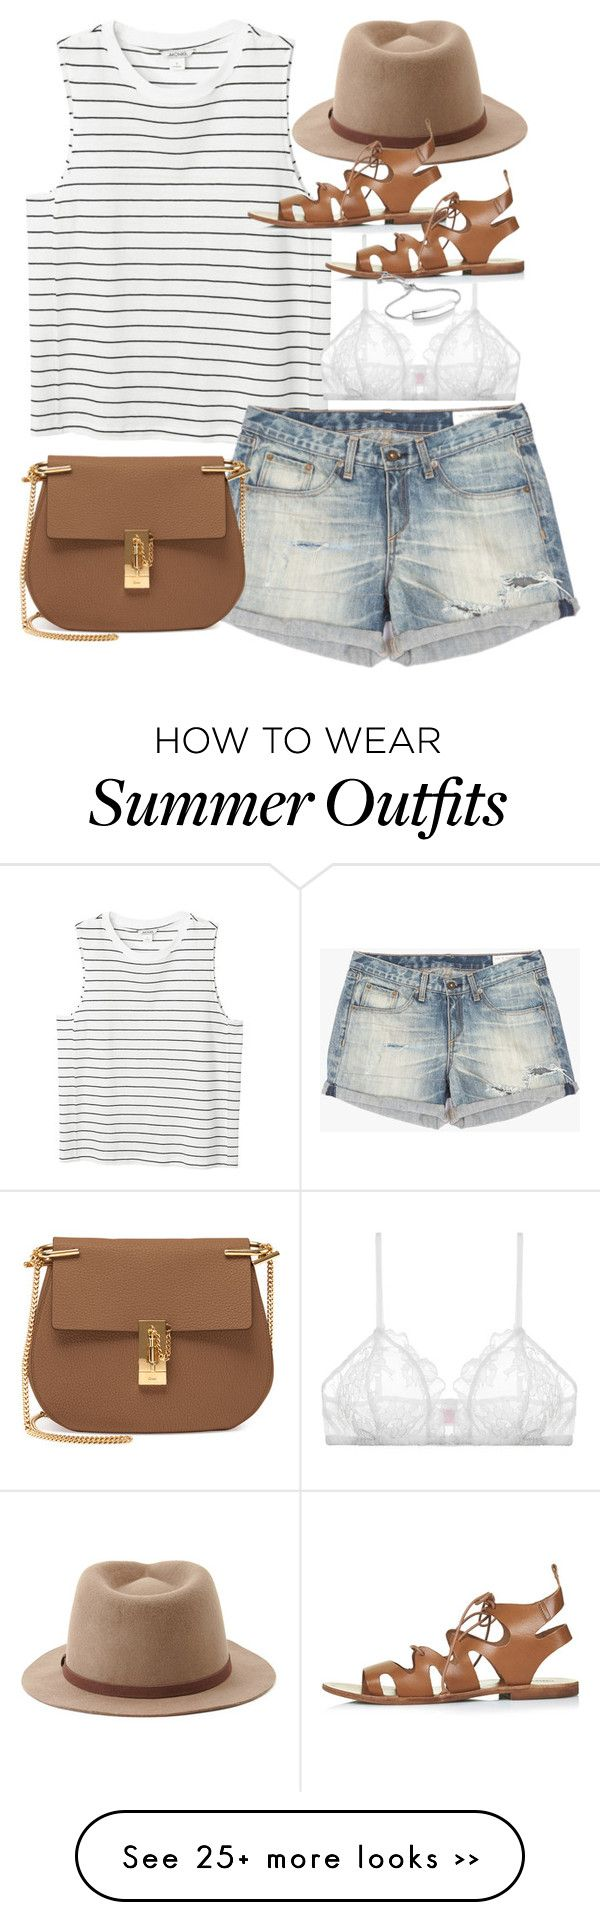 """""""Outfit for summer vacation"""" by ferned on Polyvore"""